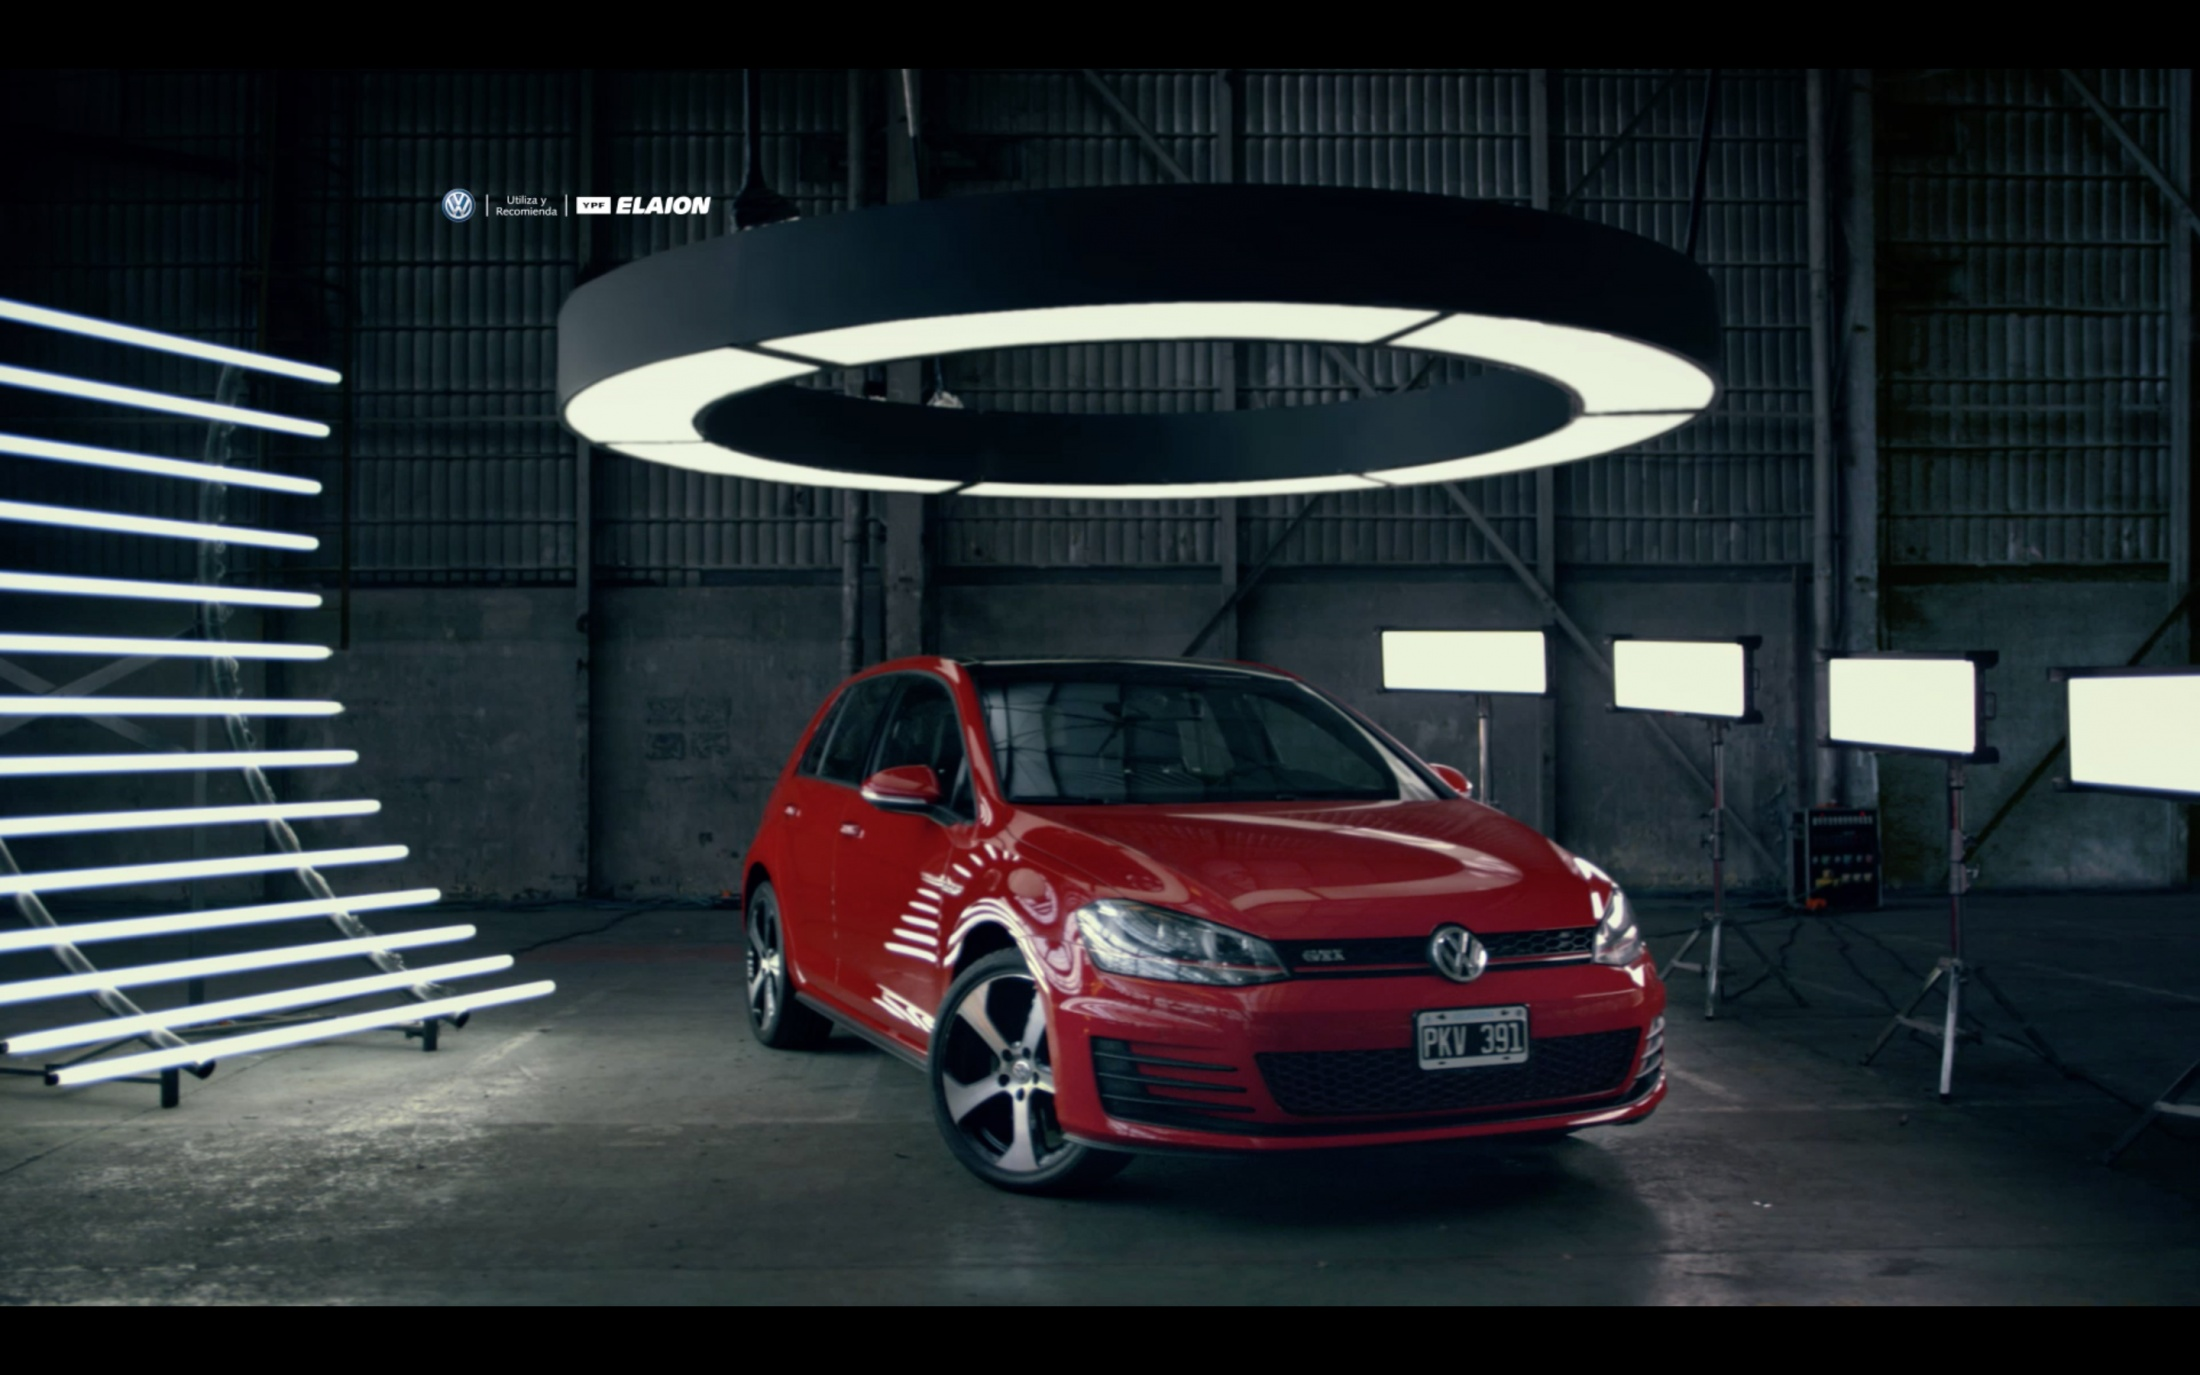 Thumbnail for Golf GTI - Fast Film - Slow motion